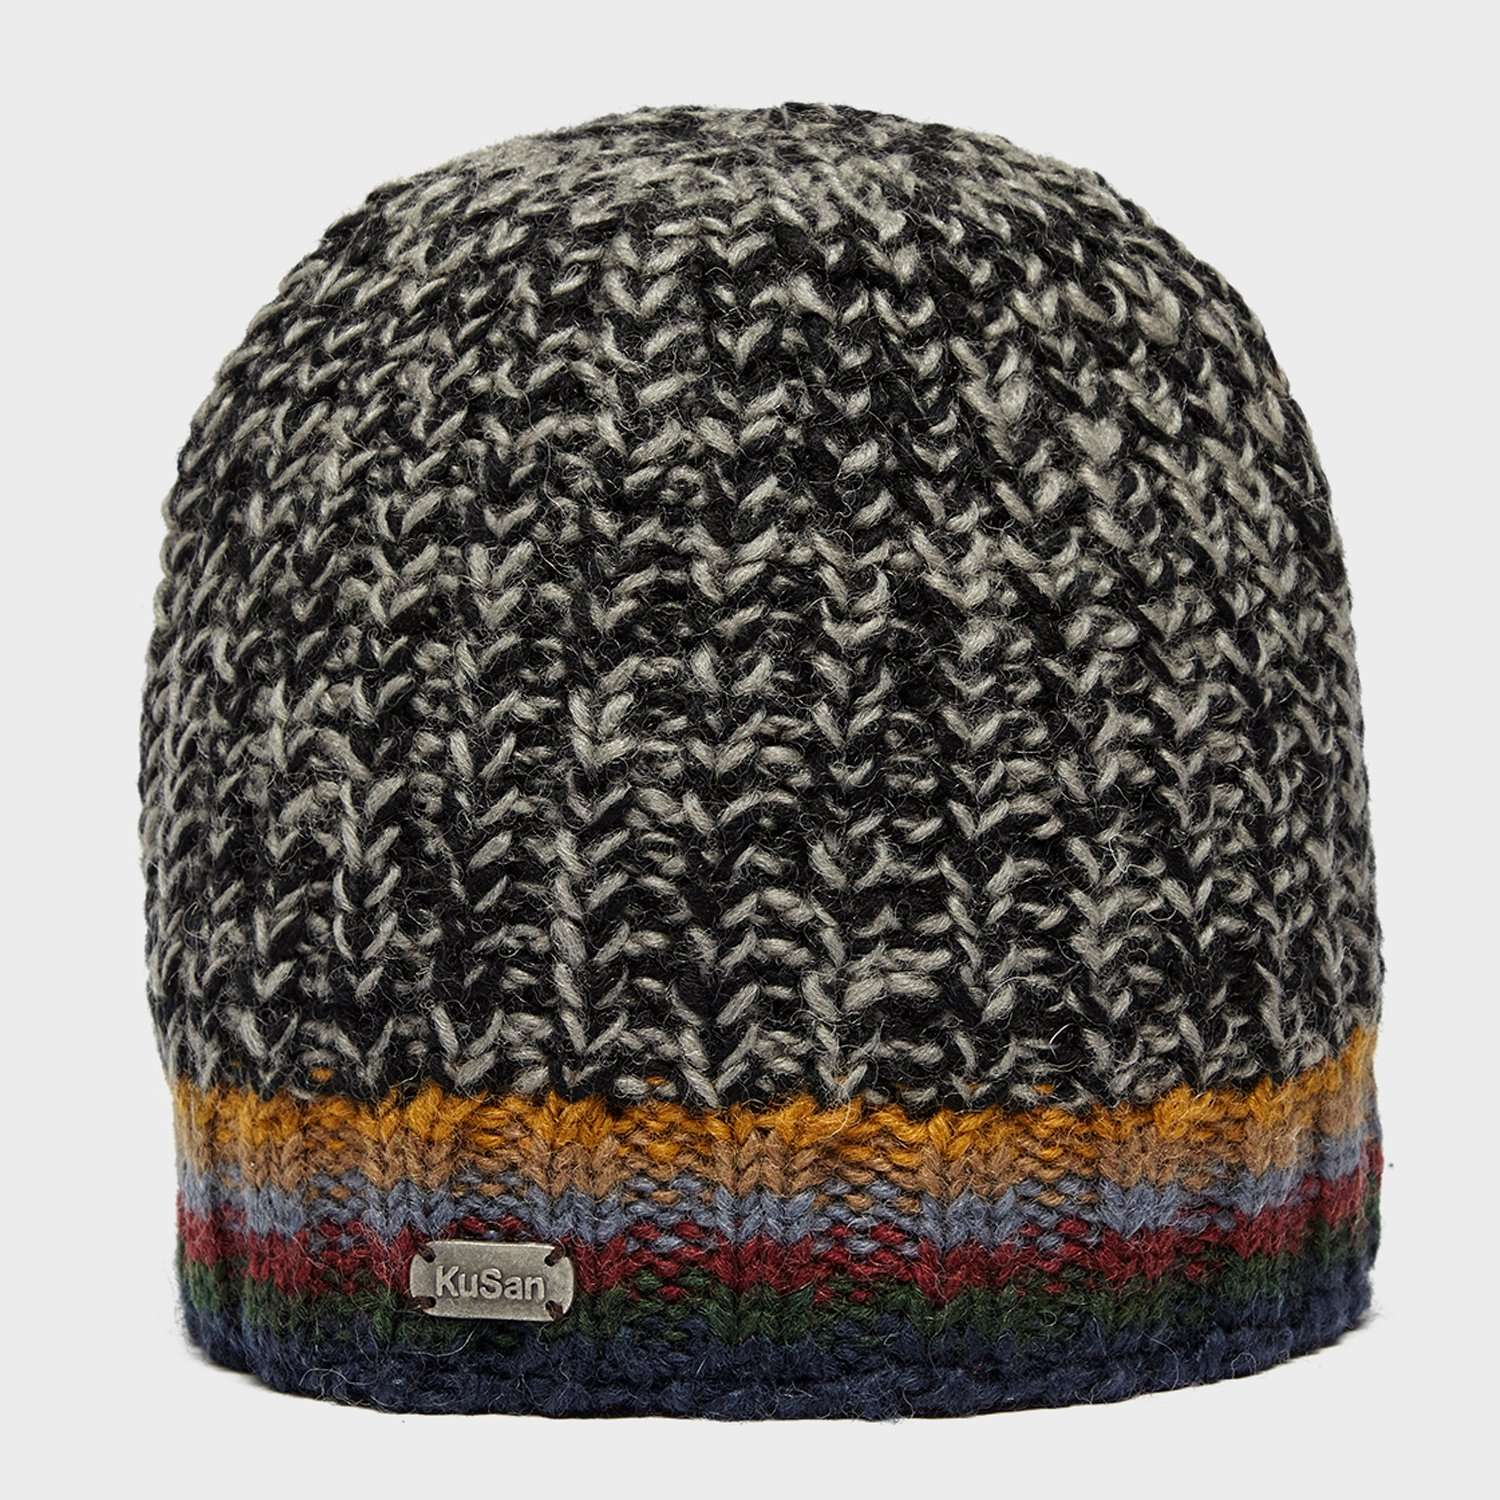 KUSAN Men's Knitted Beanie